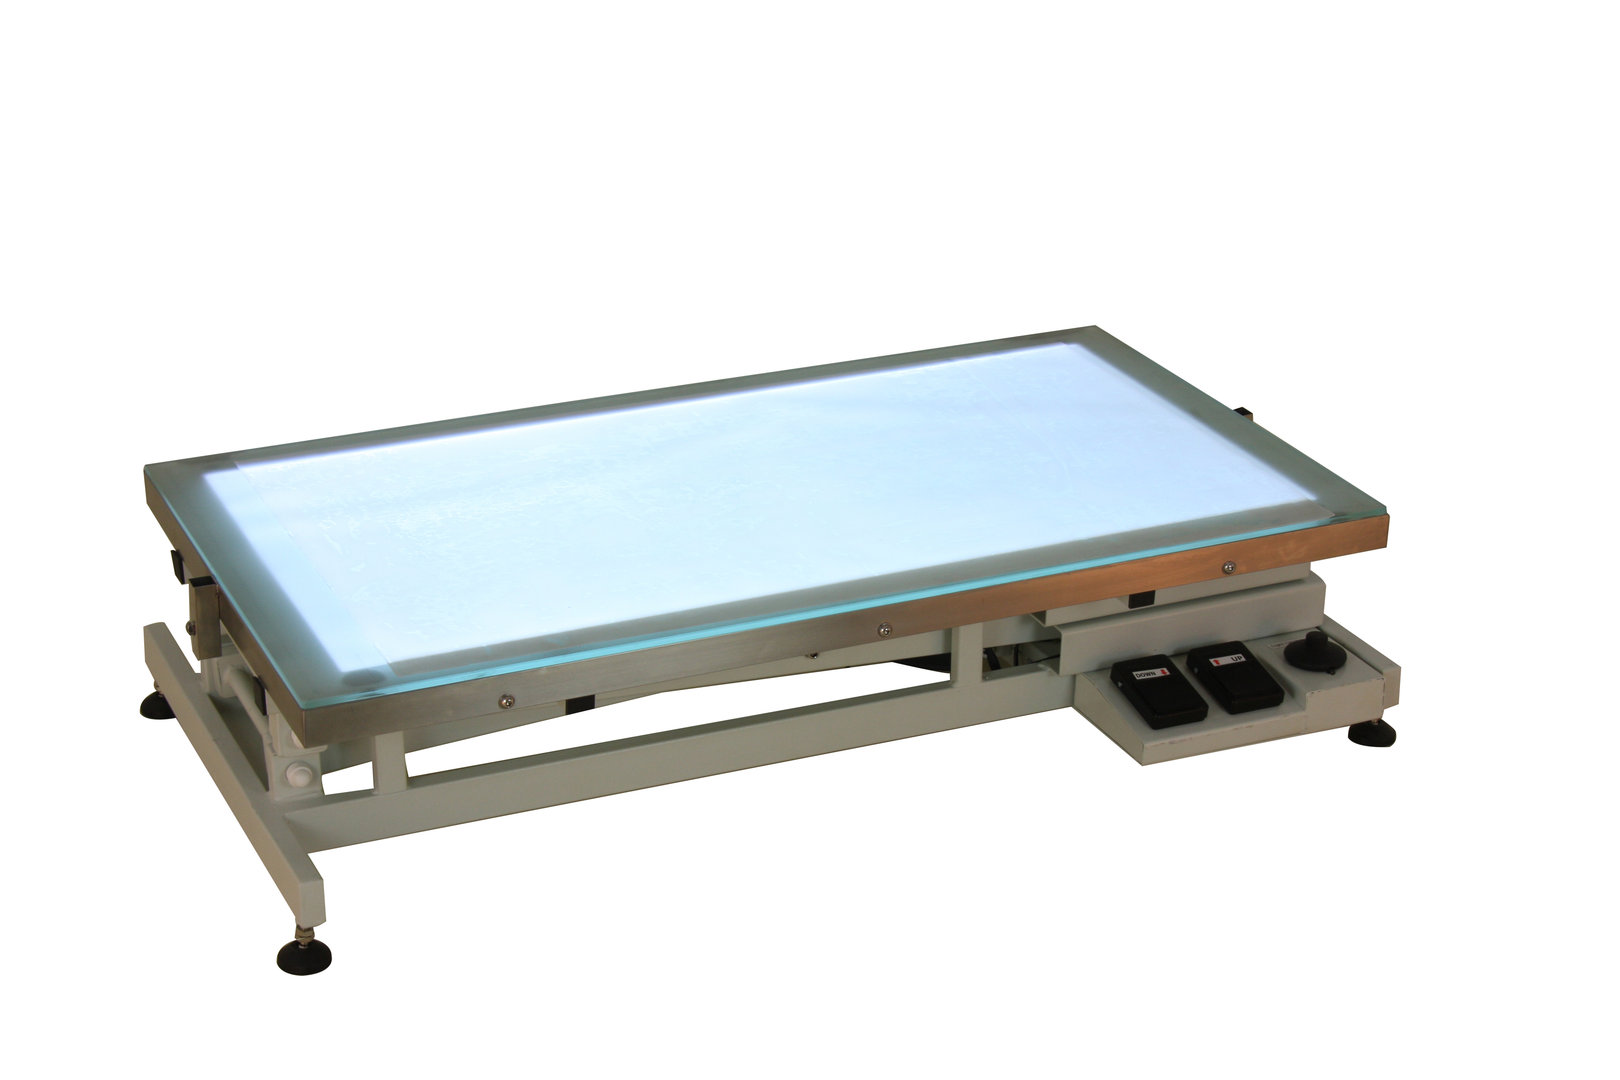 Superb Dog Grooming Table With Led Light Online Shop For Groomer Interior Design Ideas Tzicisoteloinfo